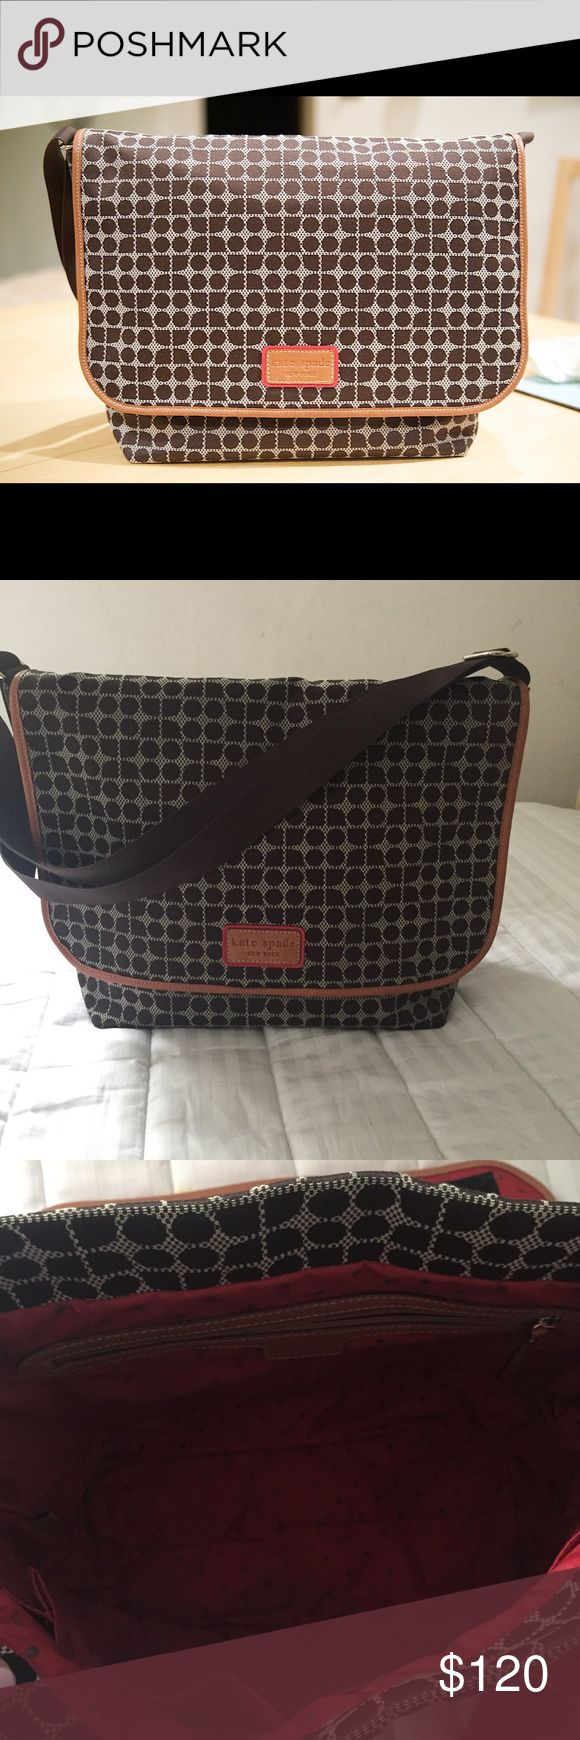 Kate Spade Kent diaper bag large EUC Adorable Kate Spade KENT messenger diaper bag in NOEL print. Large bag with changing pad. Has been slightly used but in excellent condition. Outside looks new. A few tiny marks inside. Retails for $268  S/P free  Cross posted kate spade Bags Baby Bags